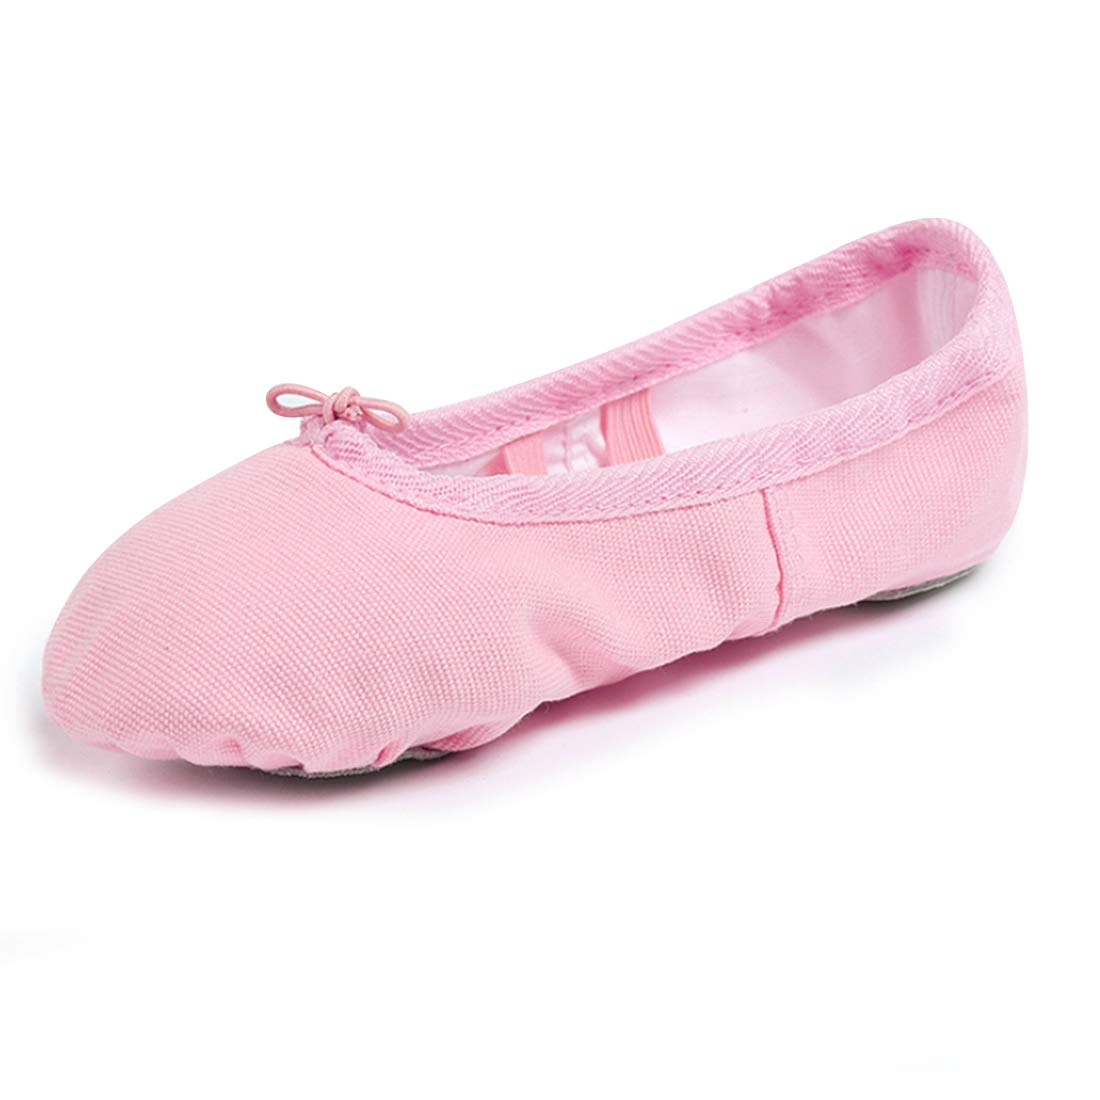 GetMine Kids Girls Ballet Dance Shoes Canvas Practice Gymnastics Ballet Flats Slipper Yoga Shoes (Toddler/Little Kid/Big Kid)